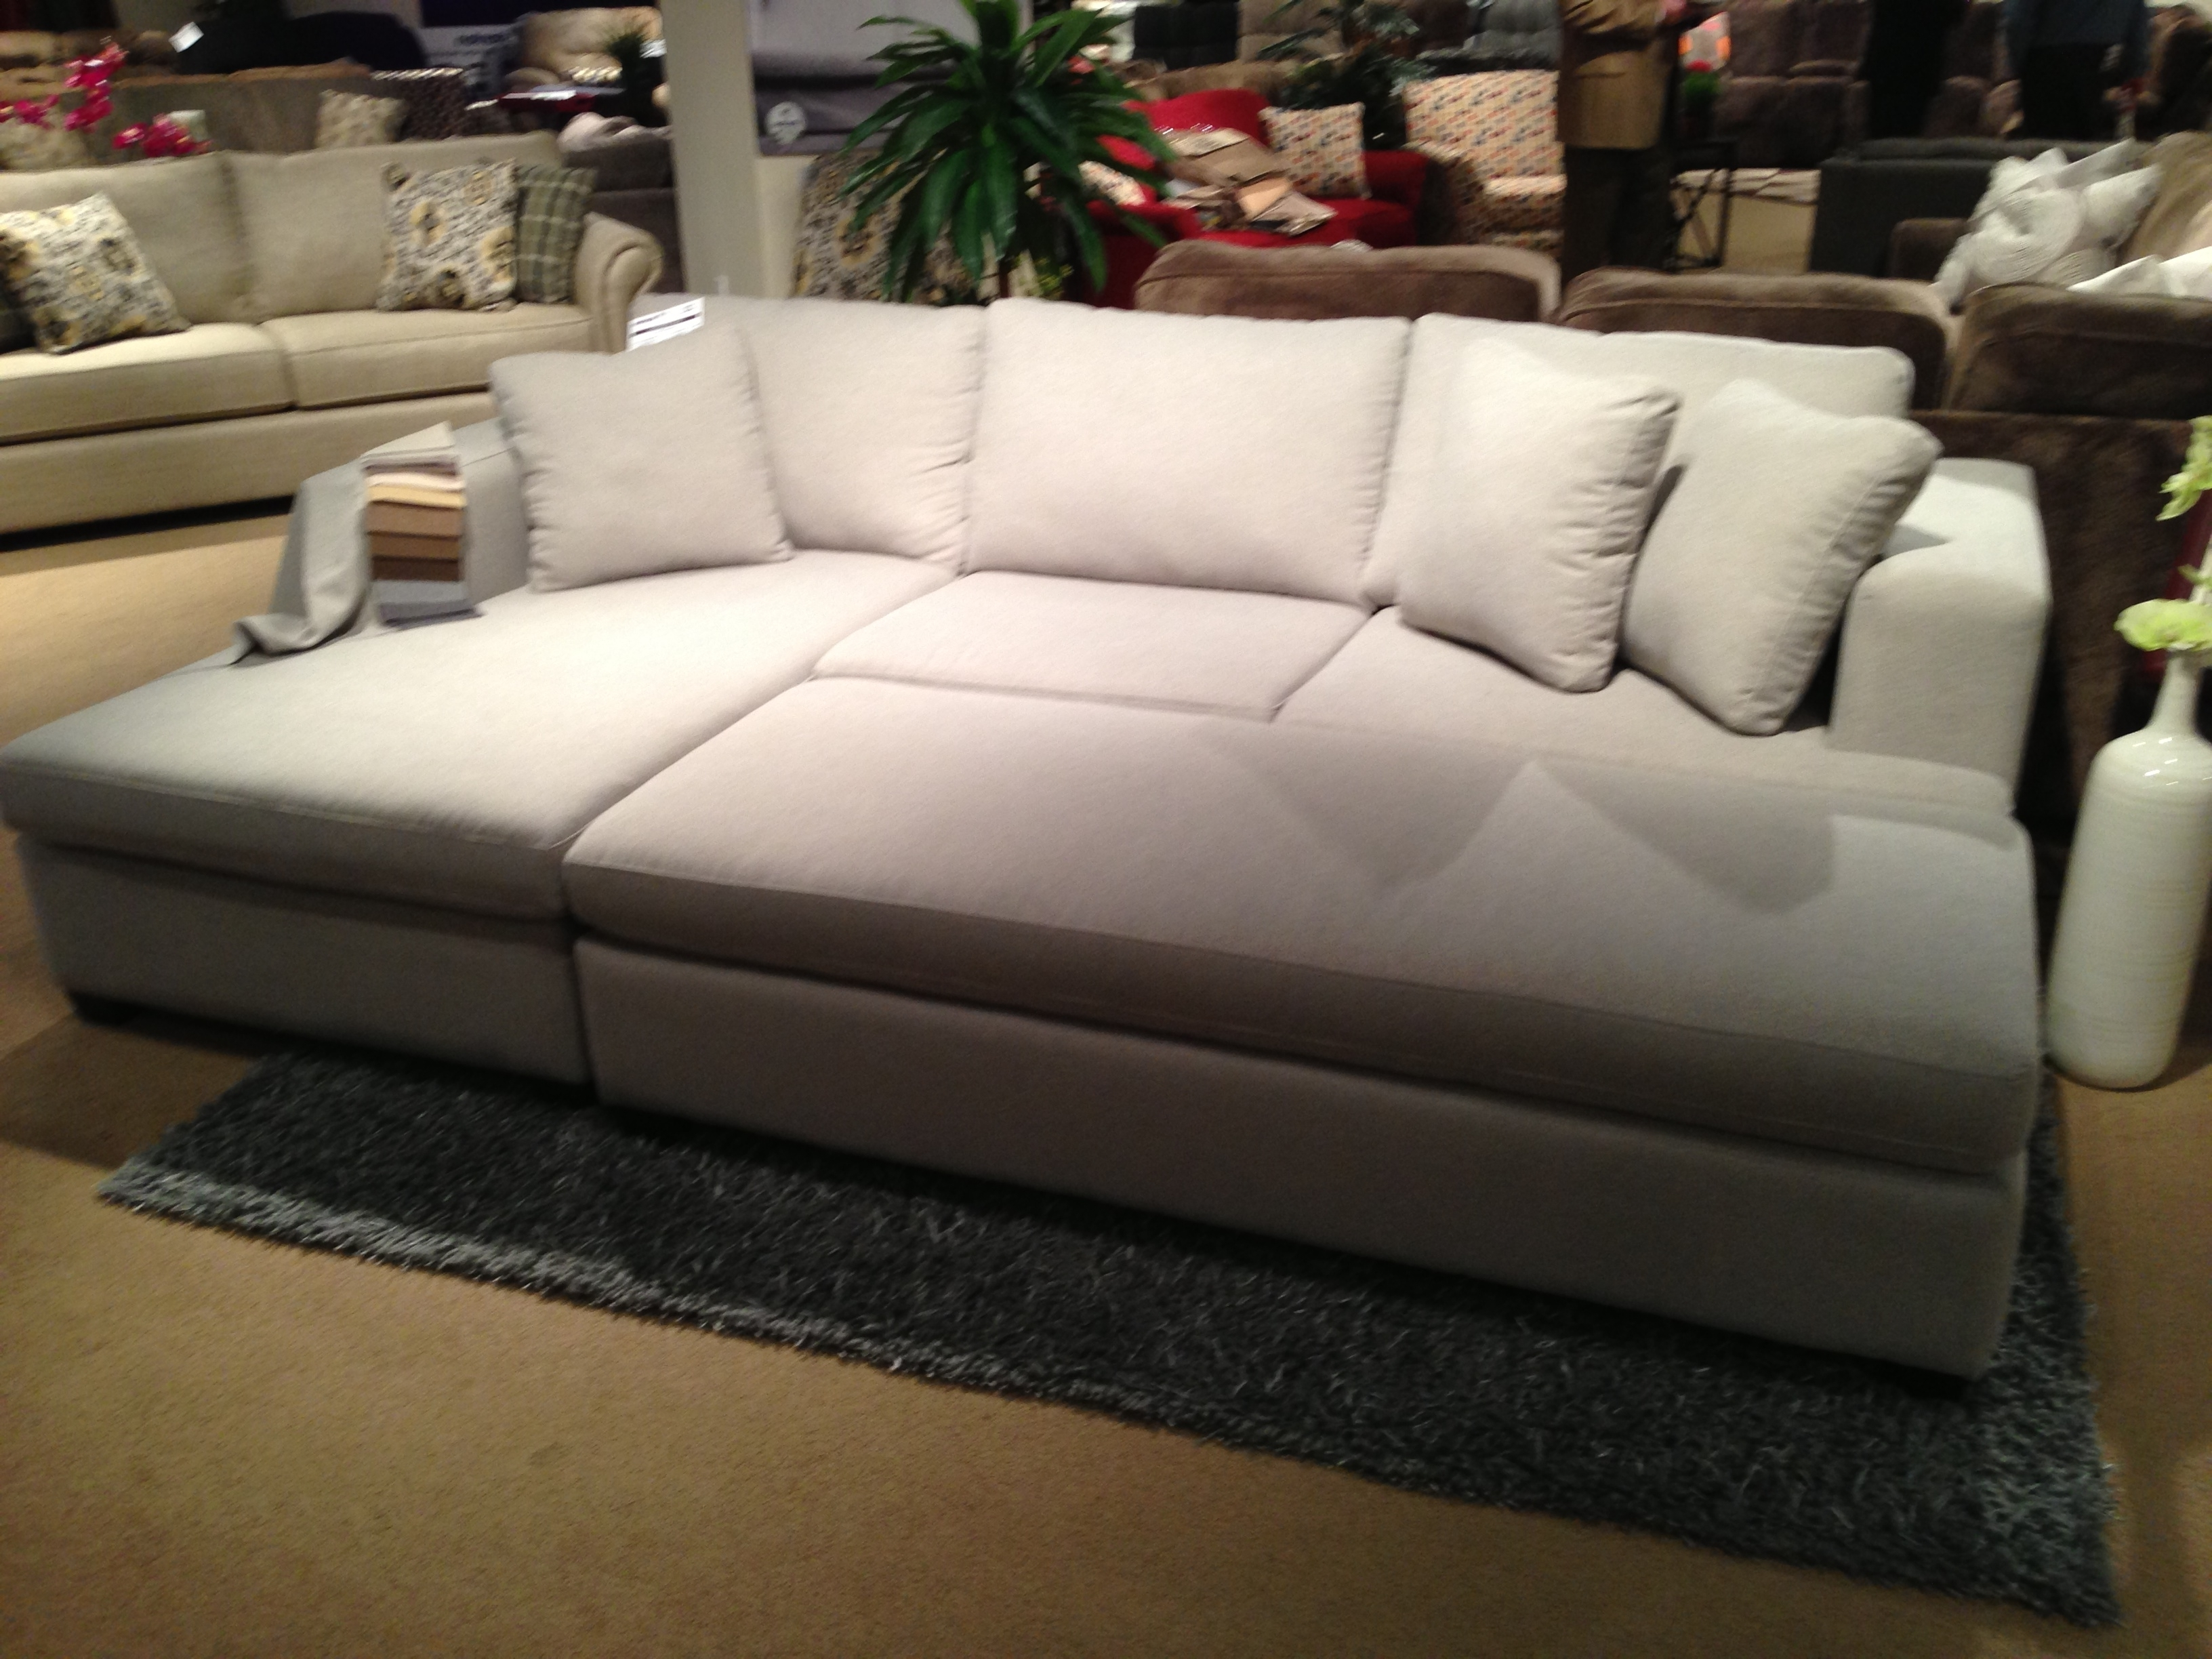 Tweetalk Intended For Sectionals With Ottoman (View 14 of 15)